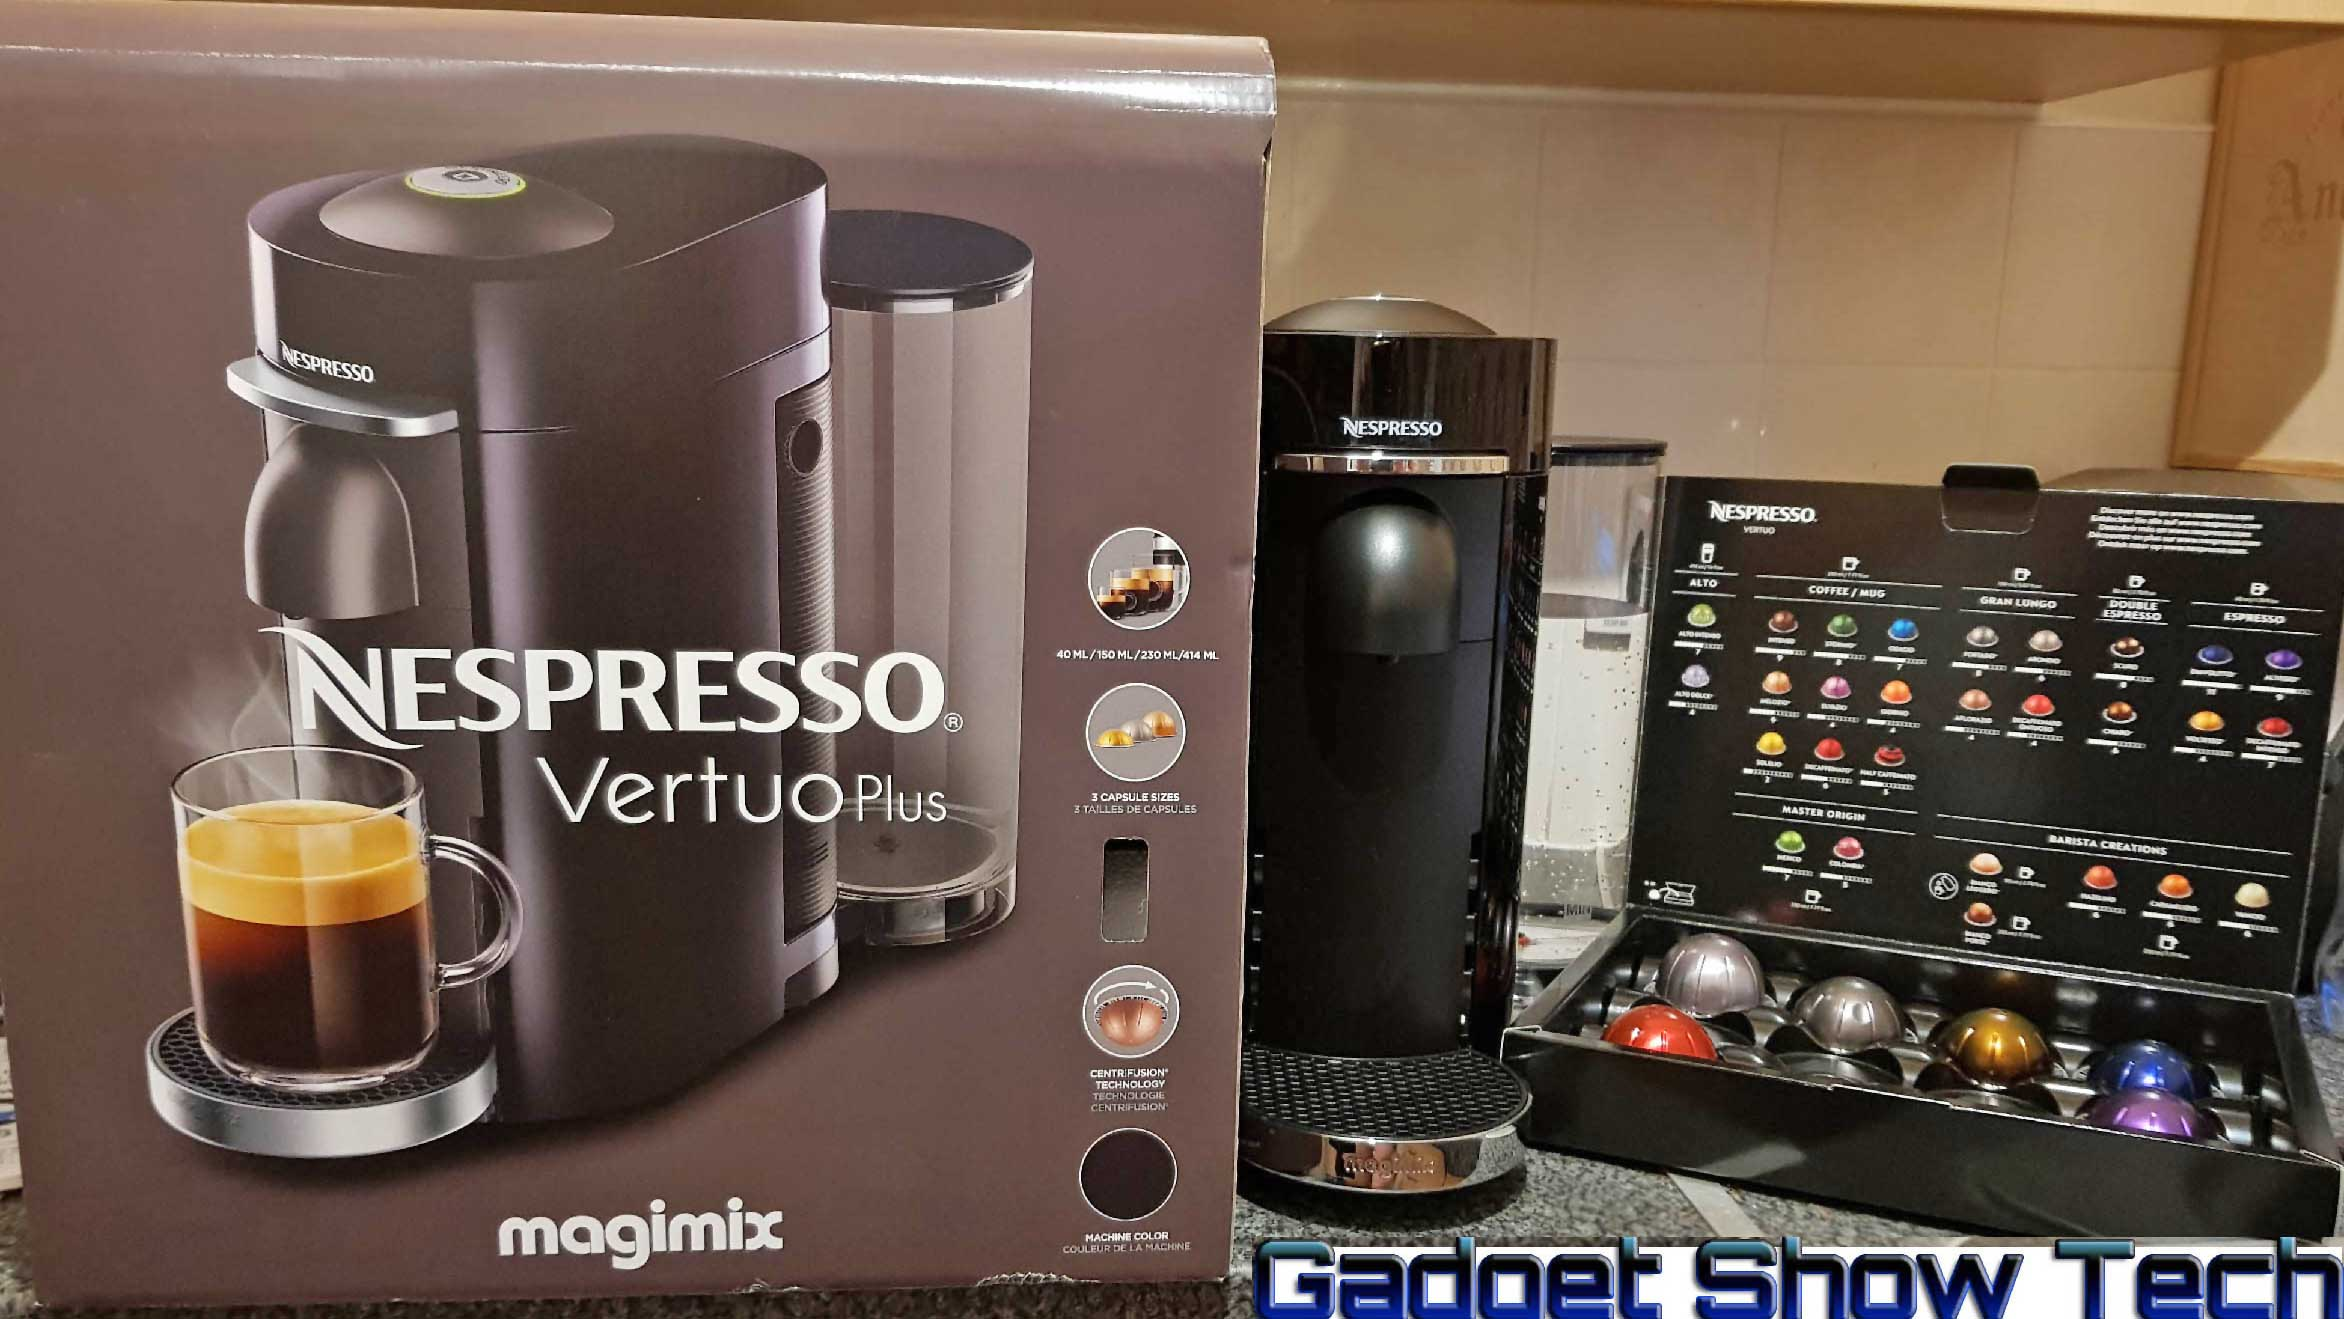 Nespresso Vertuo Plus Coffee Machine by Magimix How To Register, and add Magimix M600 machine serial number account, and 100 free capsules coffee club registration.